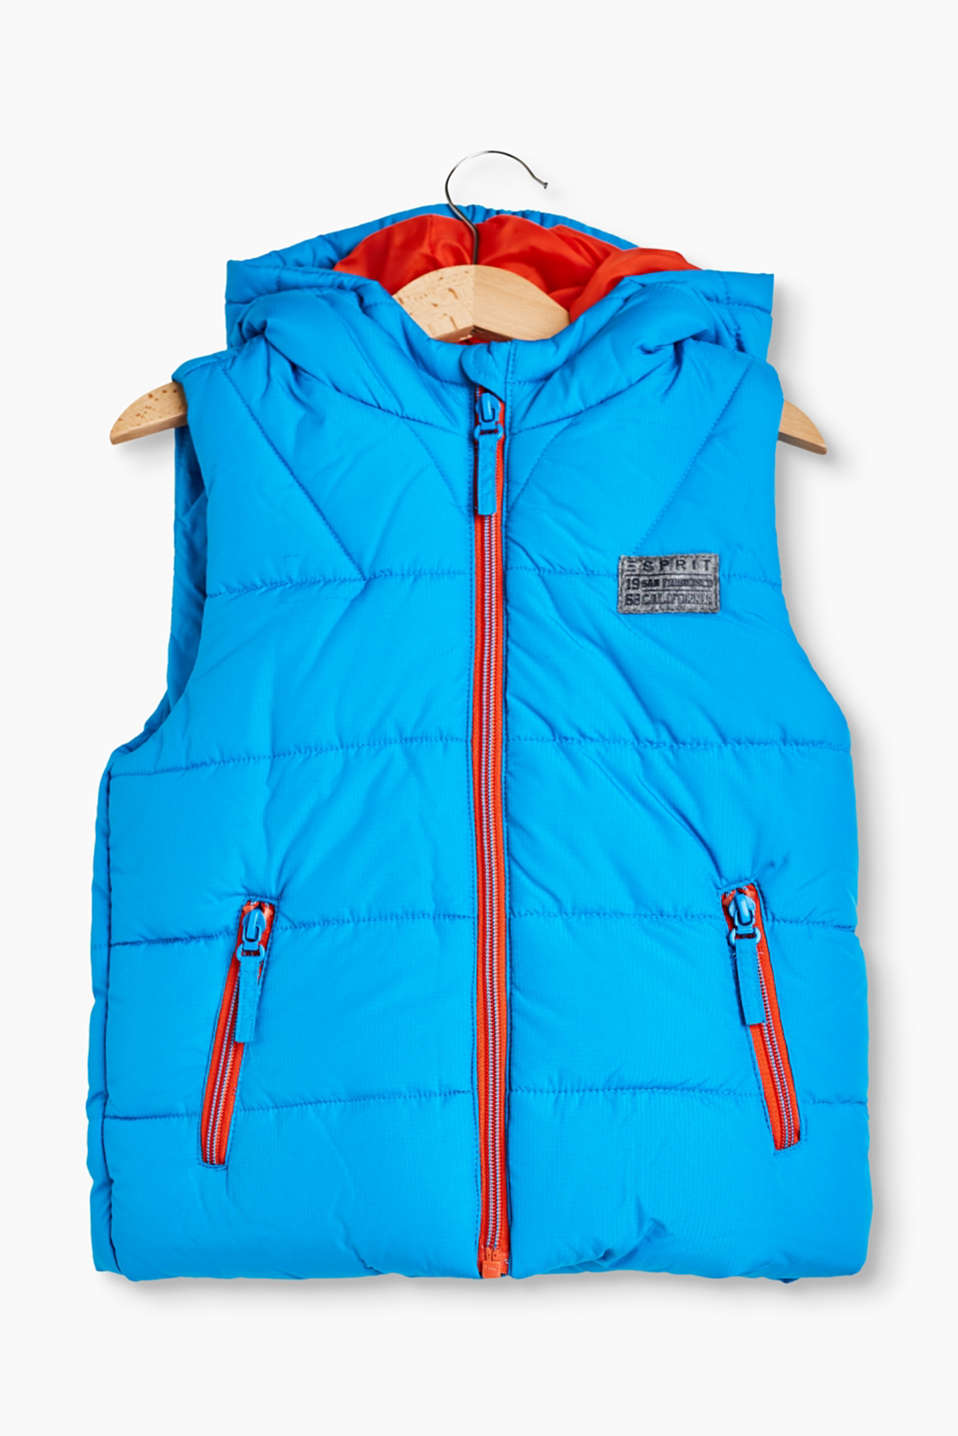 Robust quilted body warmer with colour-contrasting details and warm padding